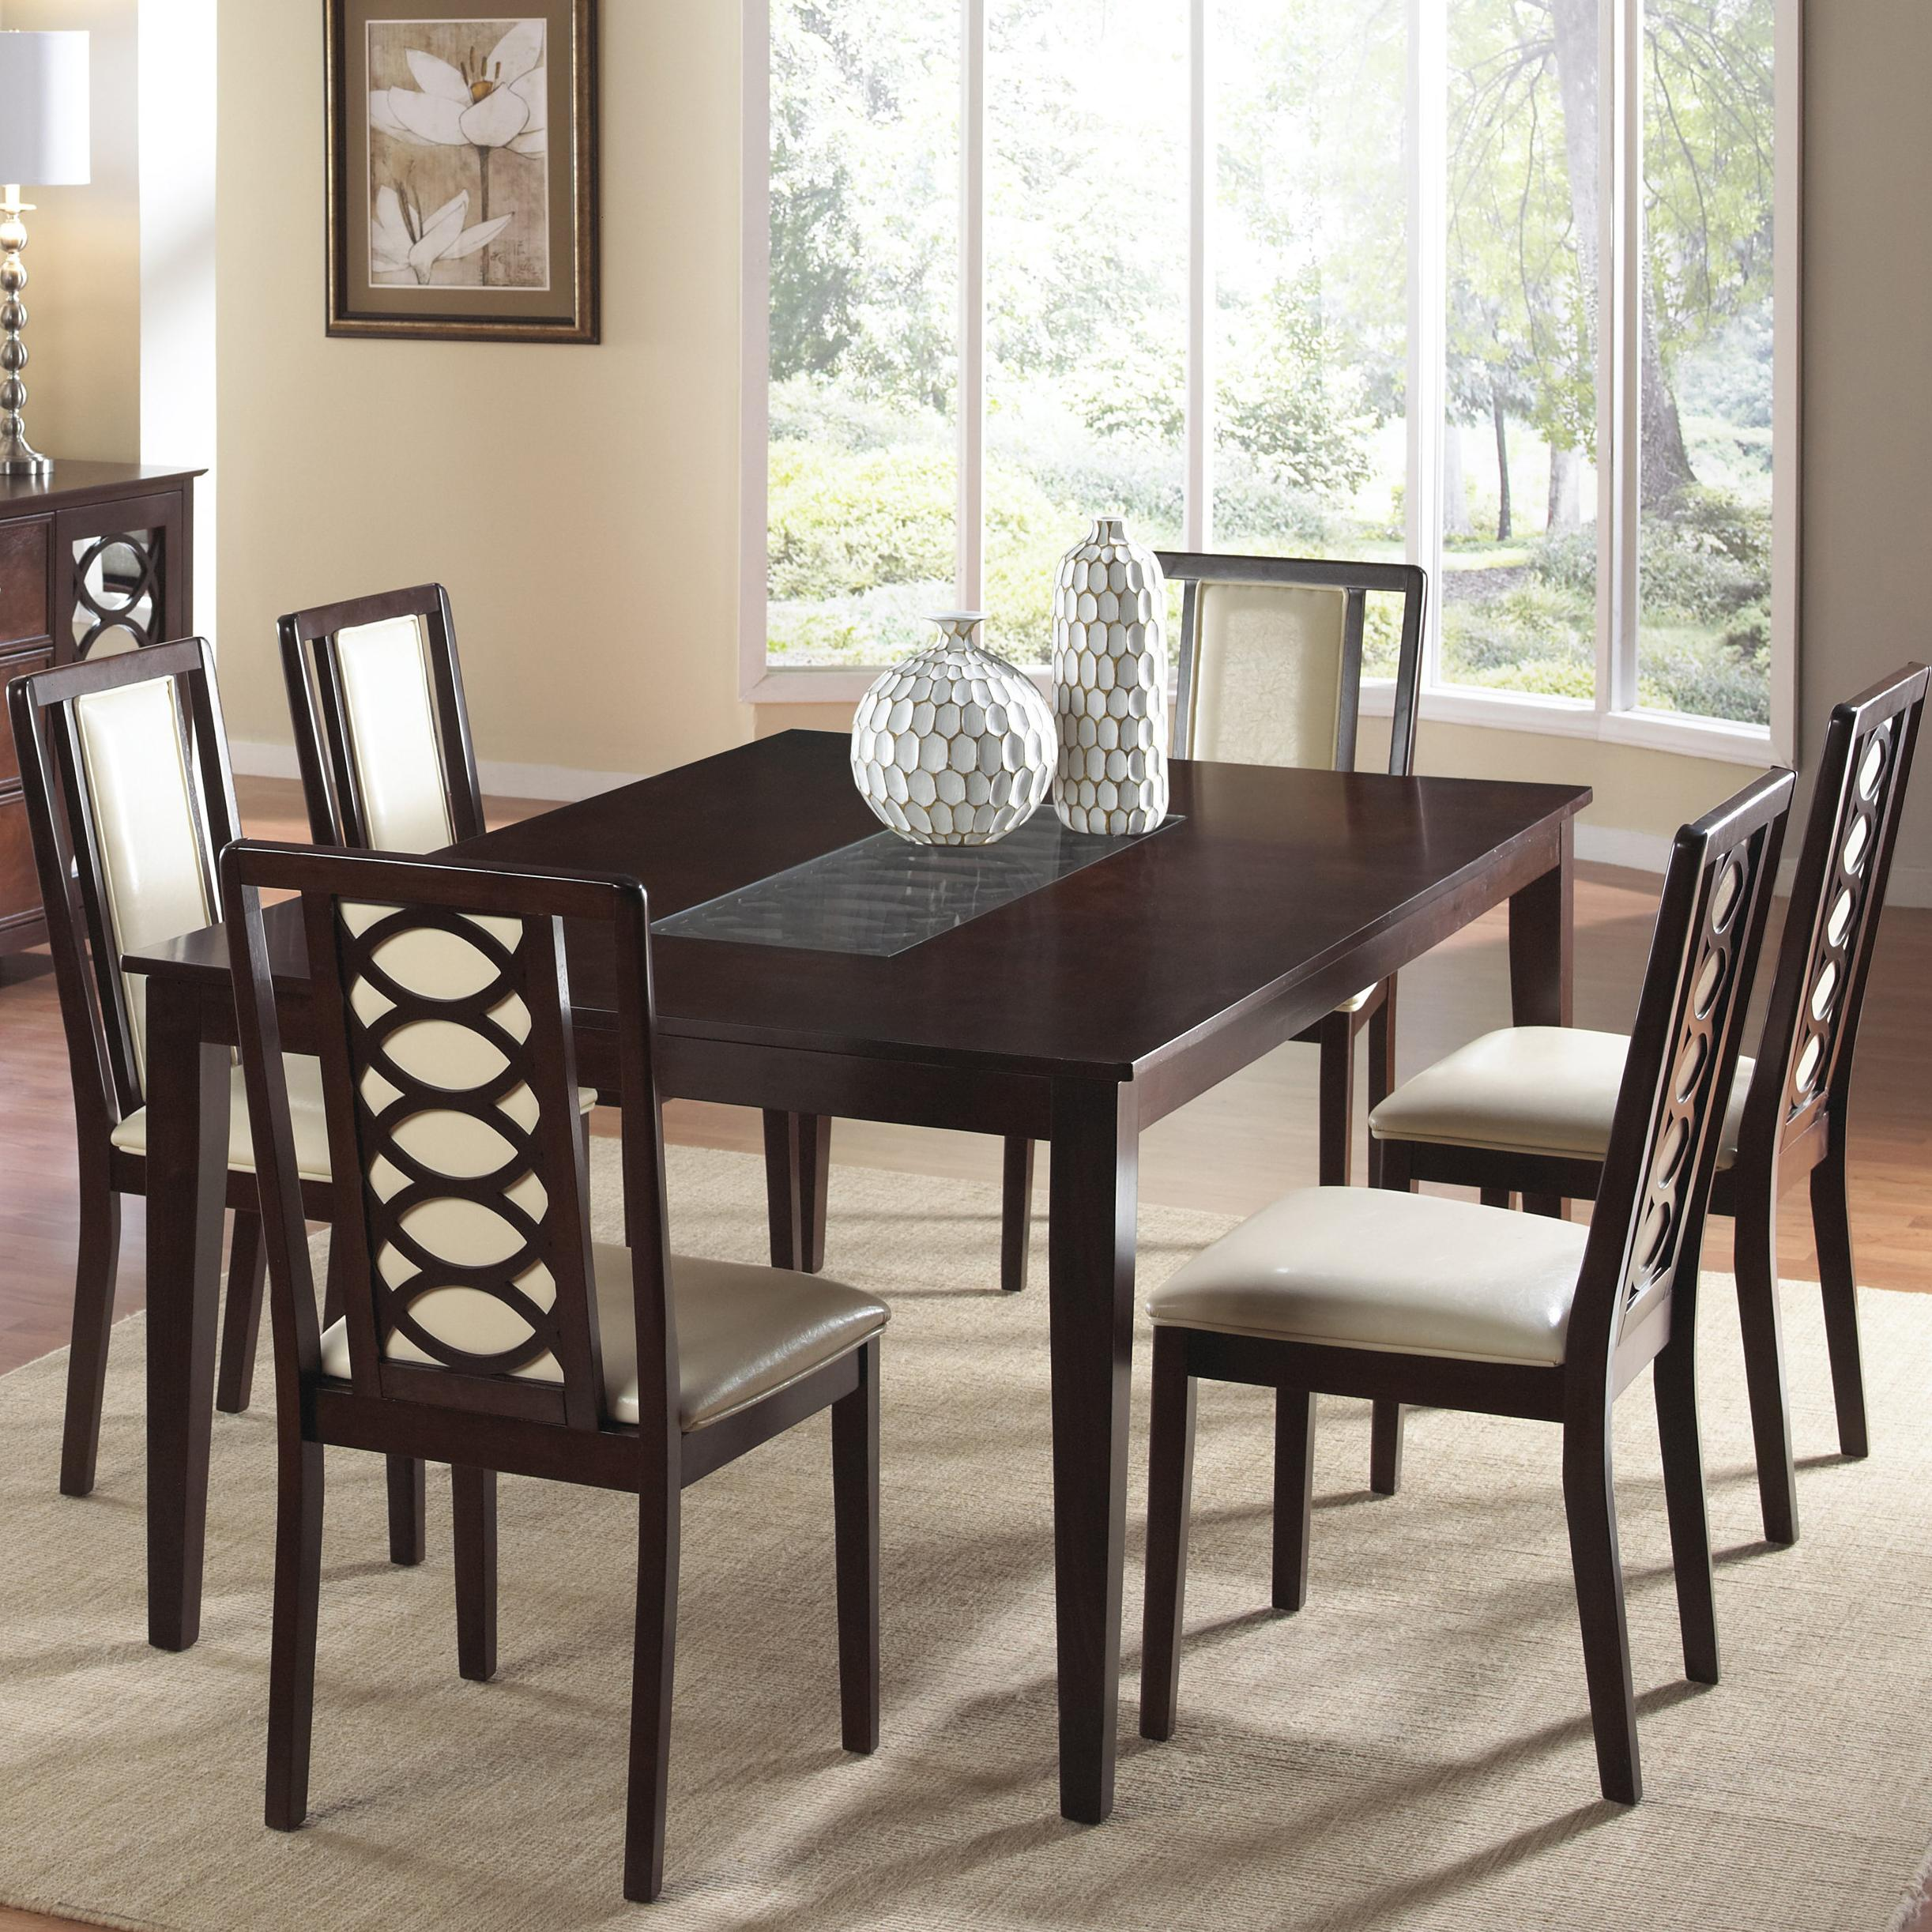 7 Piece Dining Set ~ Piece dining table and chair set by cramco inc wolf